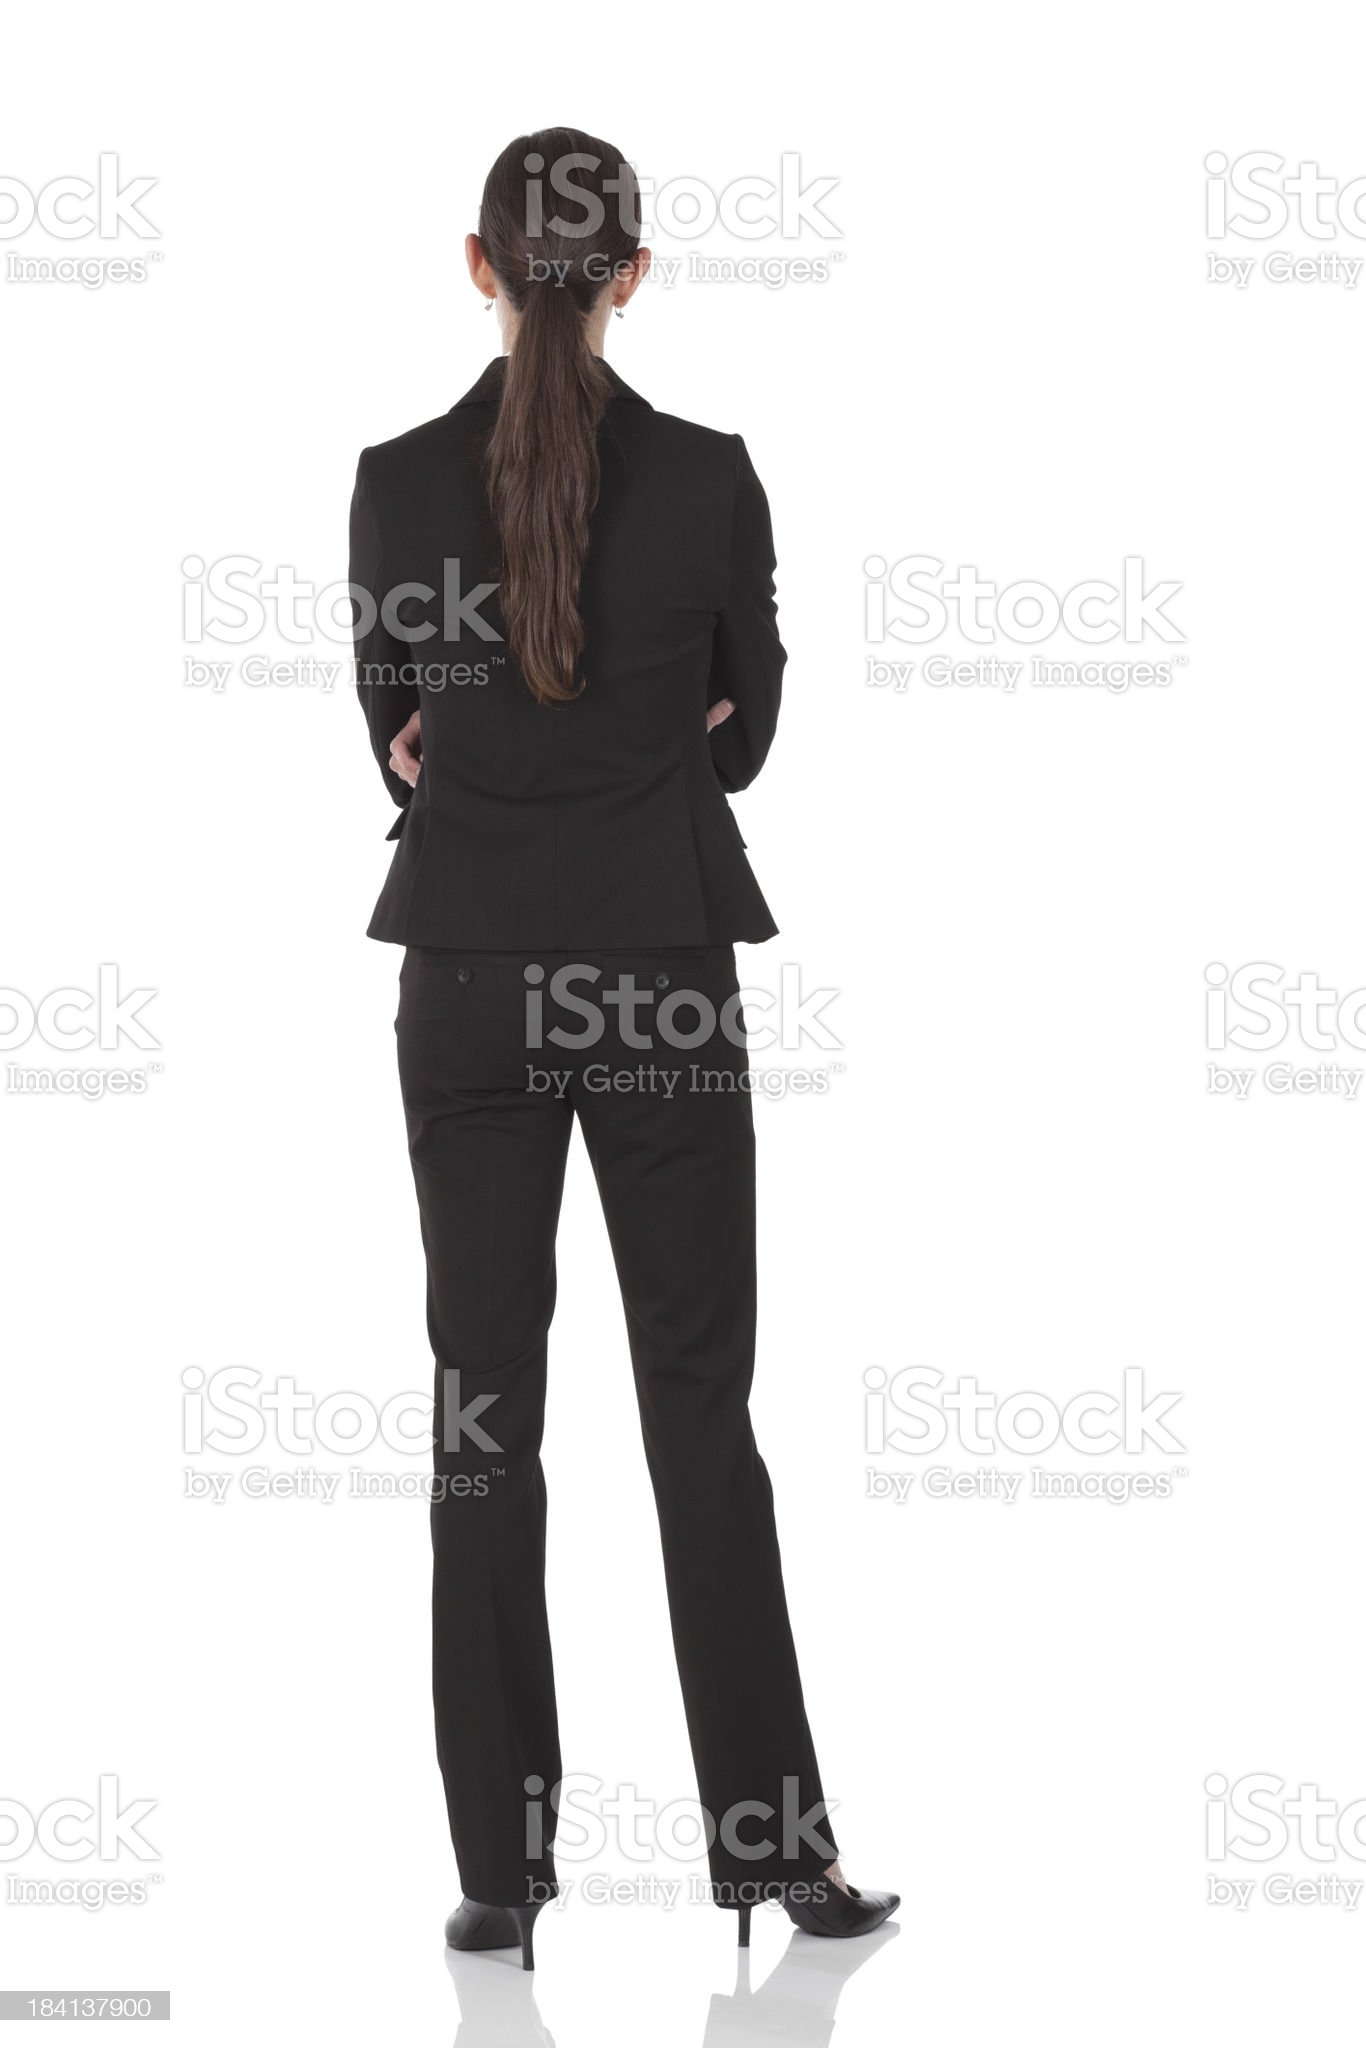 Rear view of businesswoman standing with arms crossed royalty-free stock photo